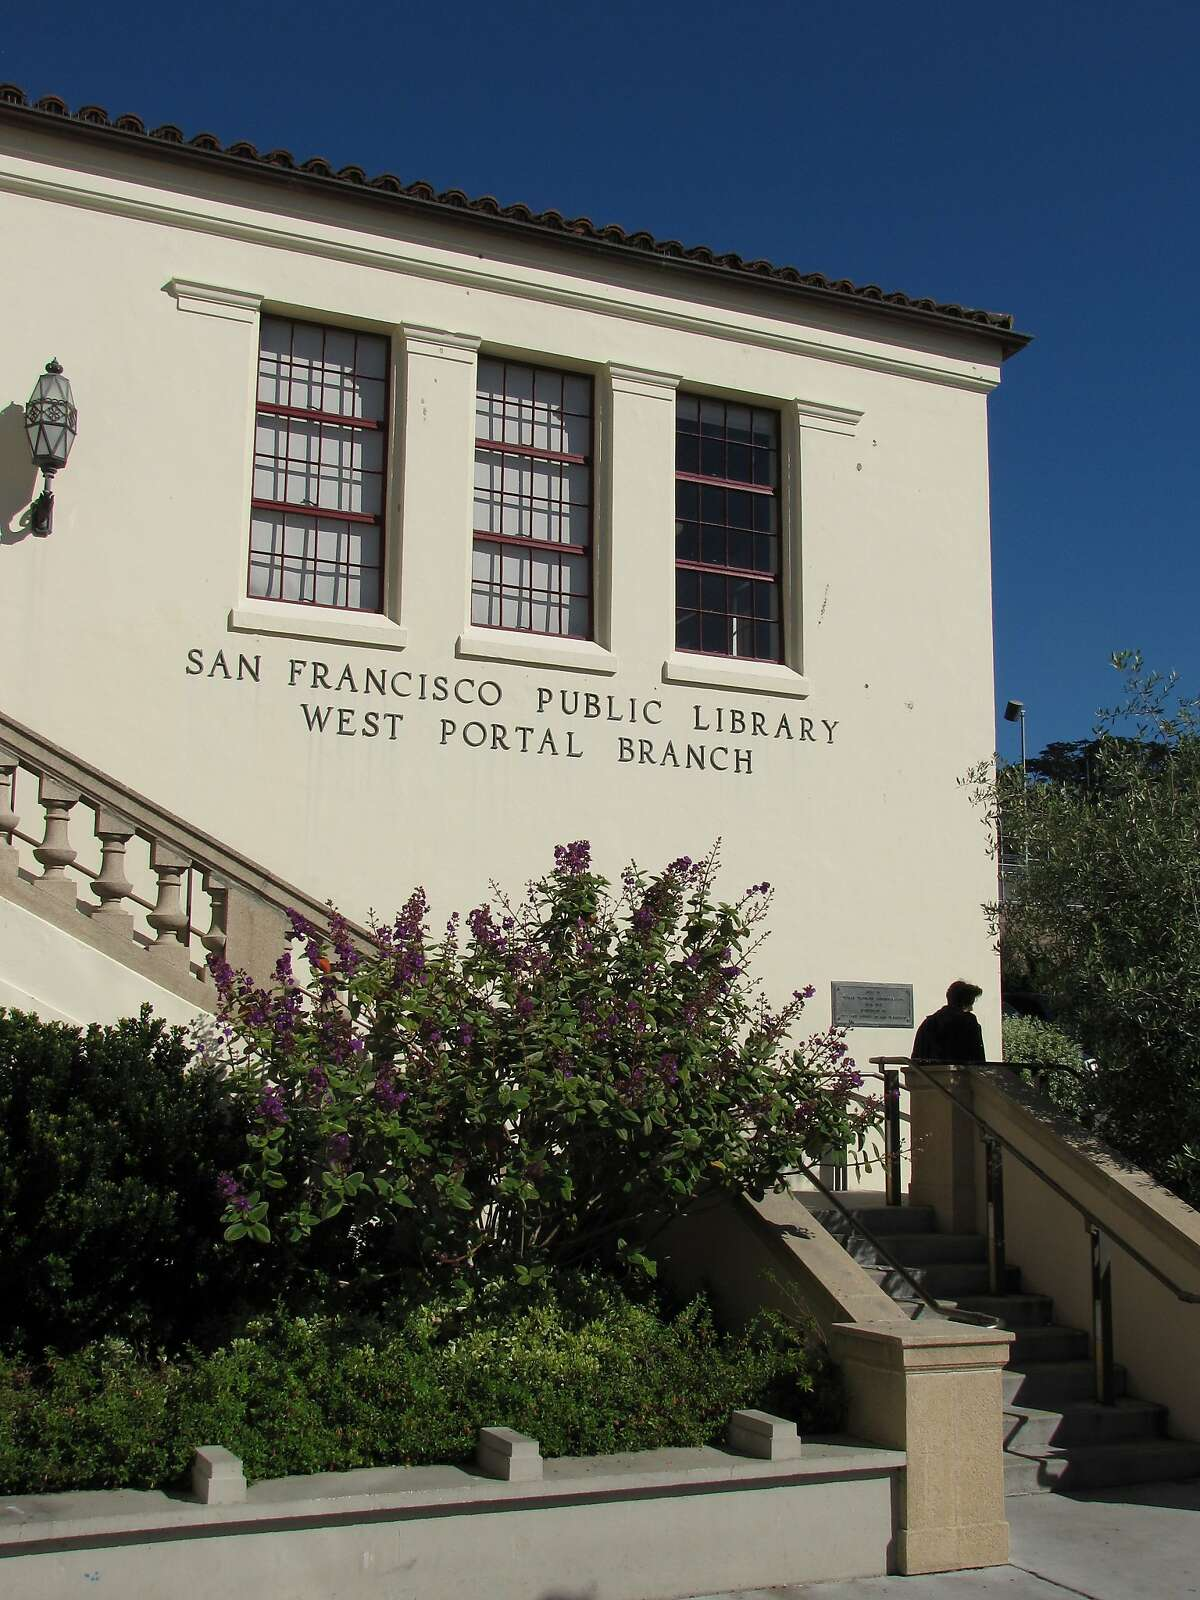 The West Portal branch library opened in 1939. It was redone and reopened in 2007, but the idea was to look as though there hadn't been any changes at all.